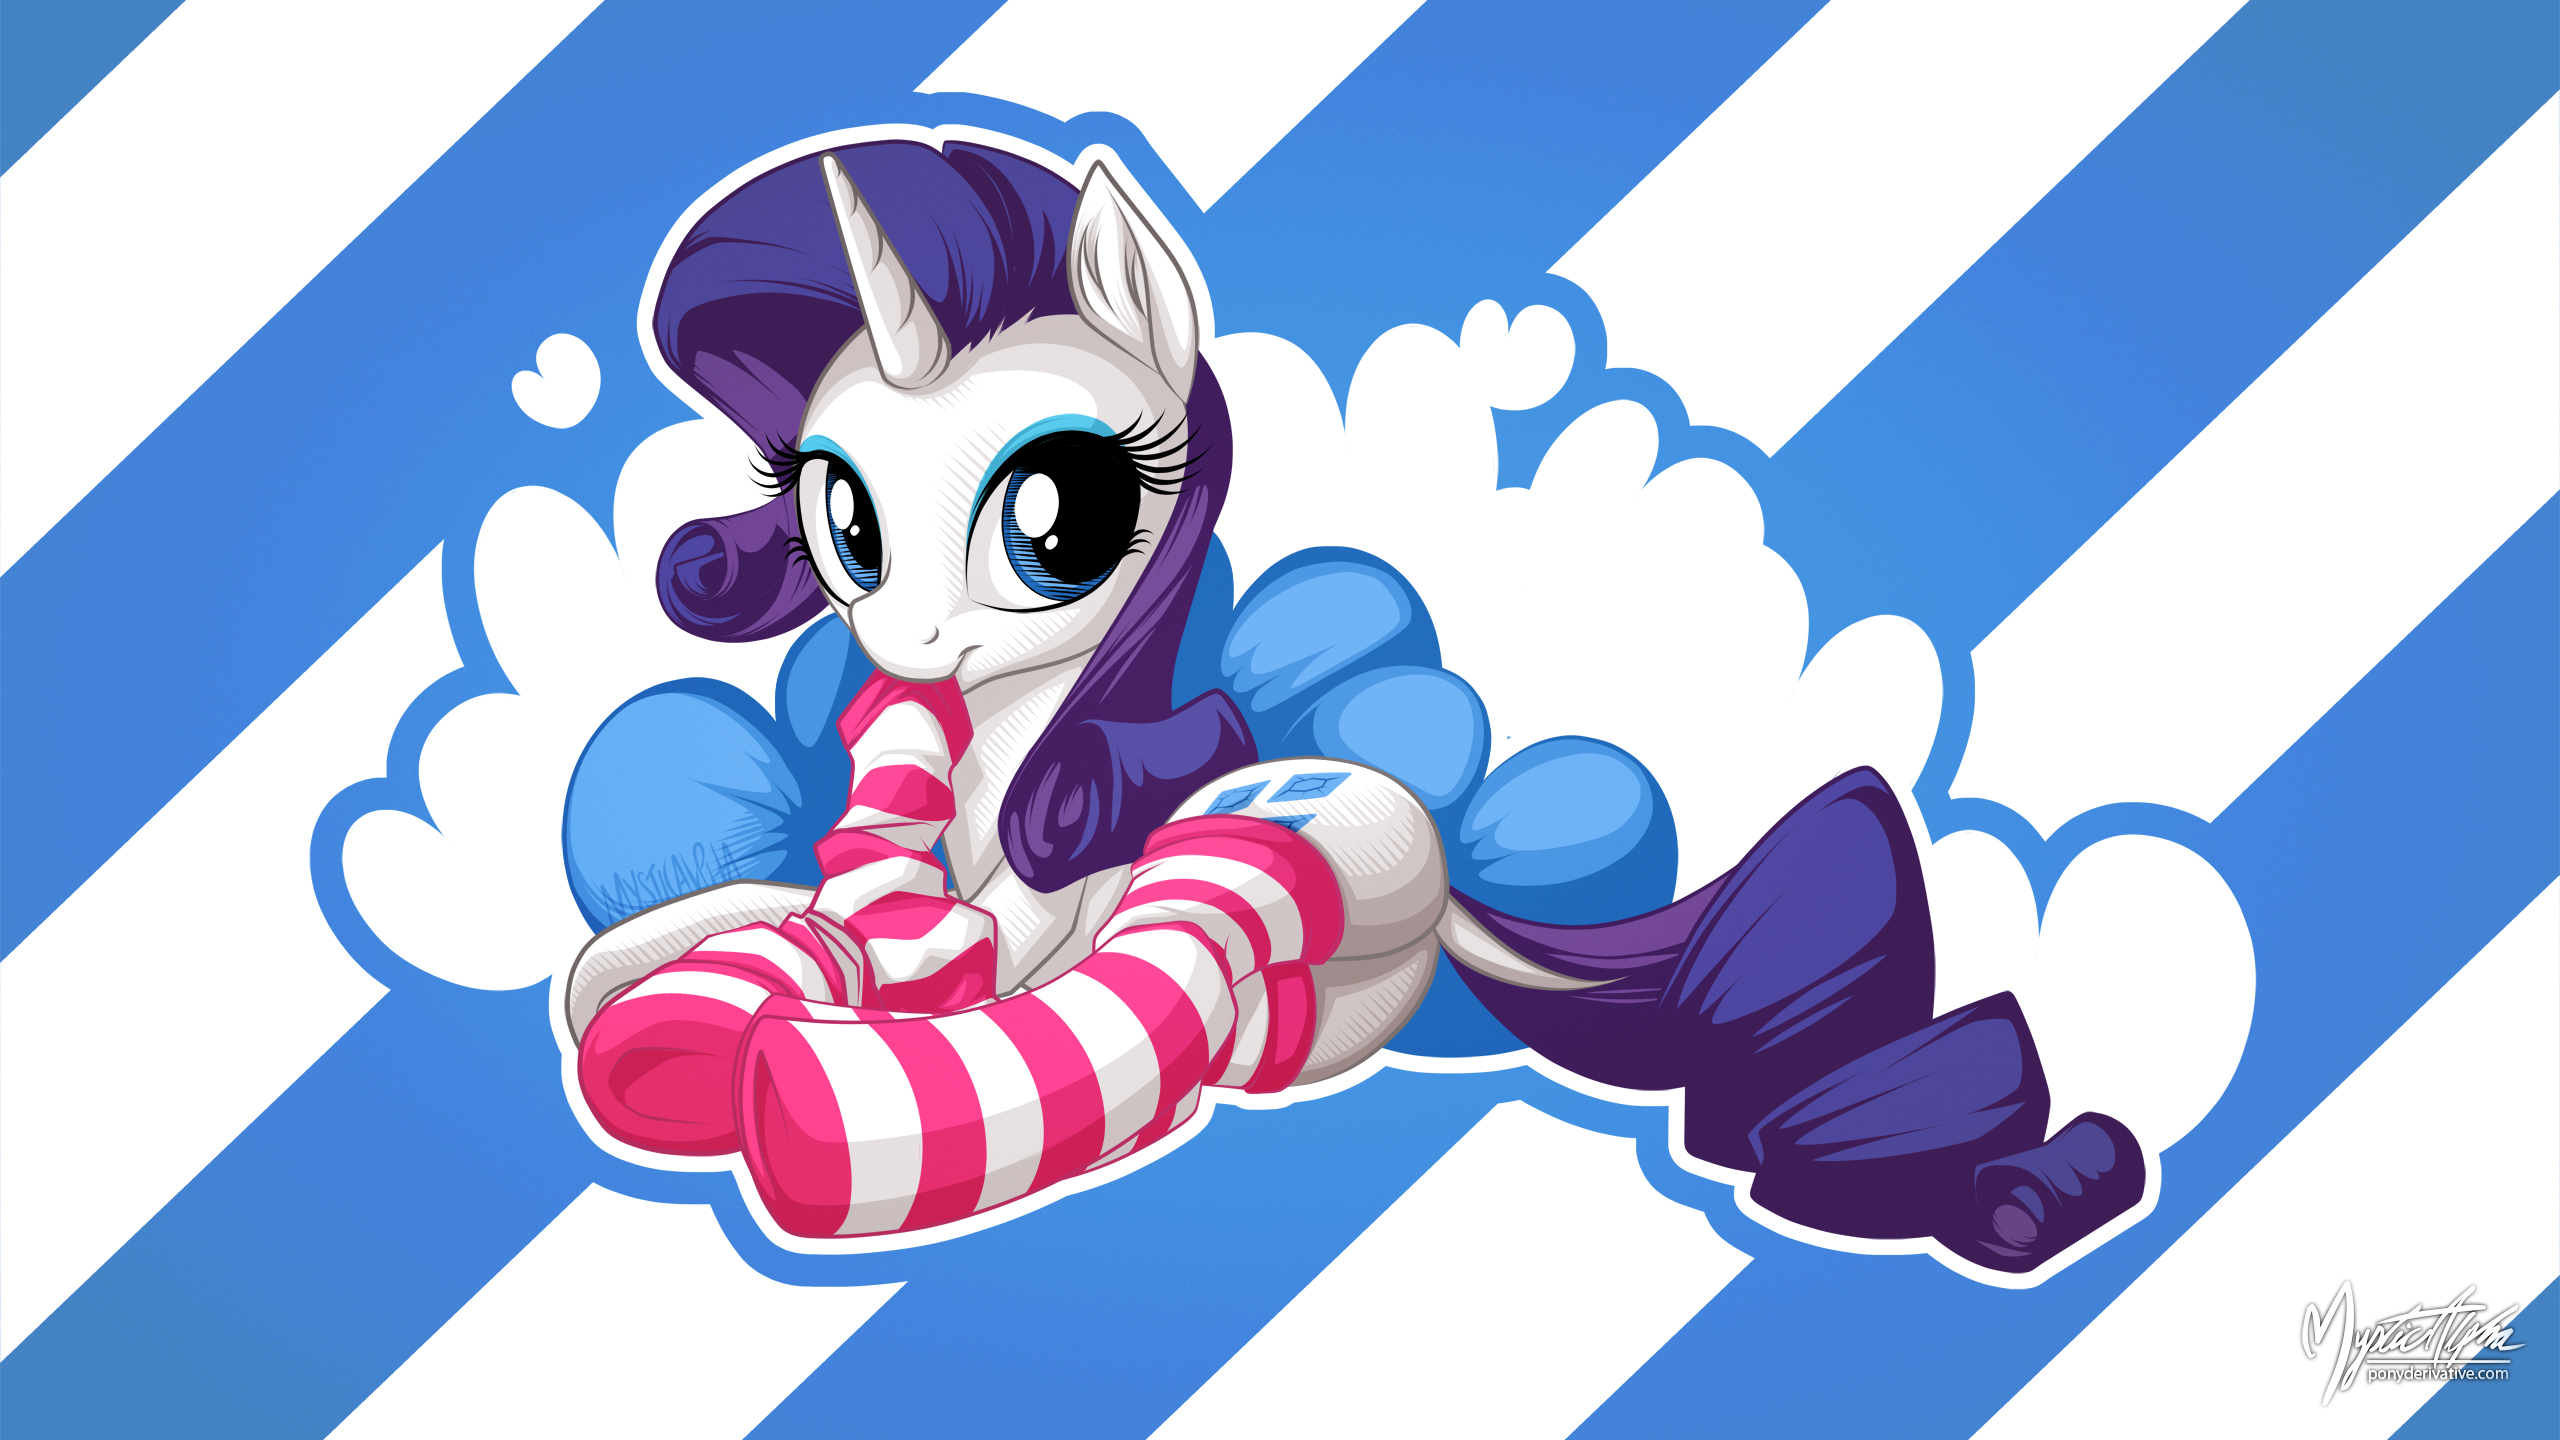 Rarity in Stocking [Saucy] 16:9 by mysticalpha